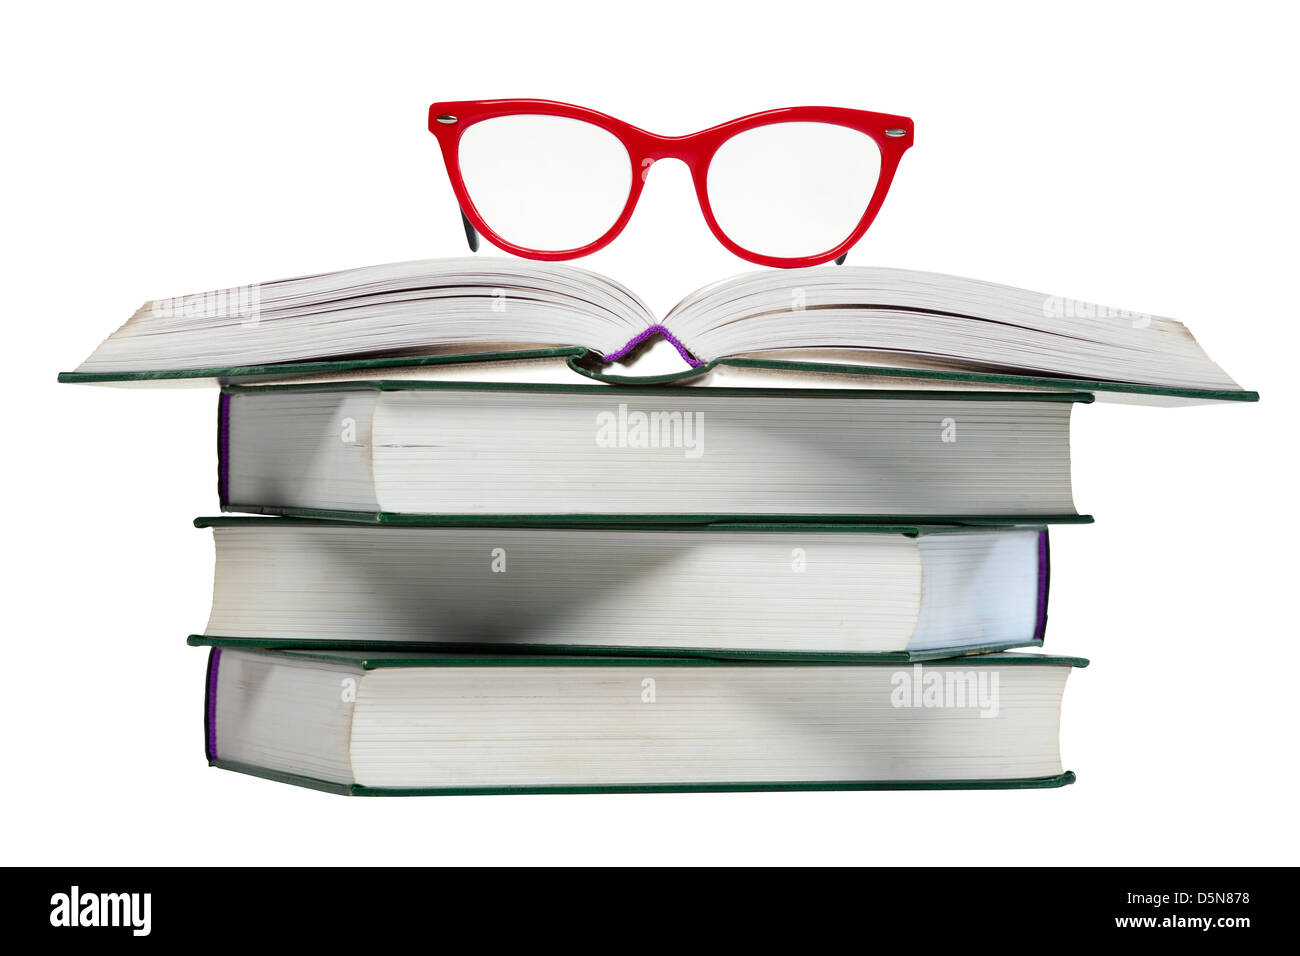 red glasses on open book, pile or stack of books isolated over white background - Stock Image